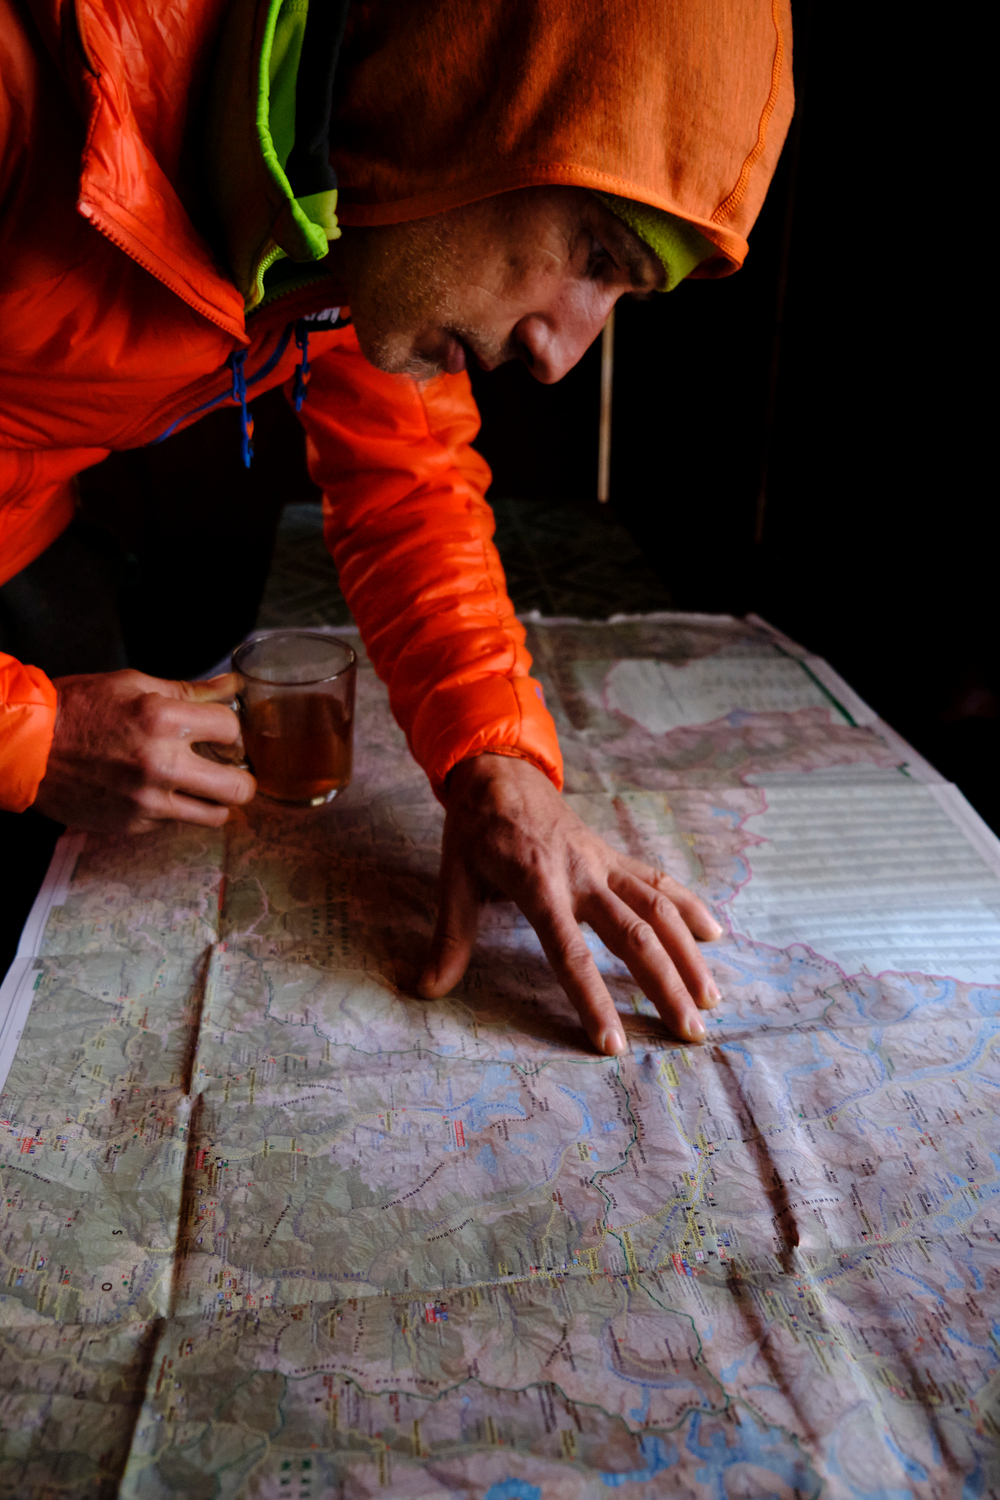 A man holding a cup with a tea reading a map.